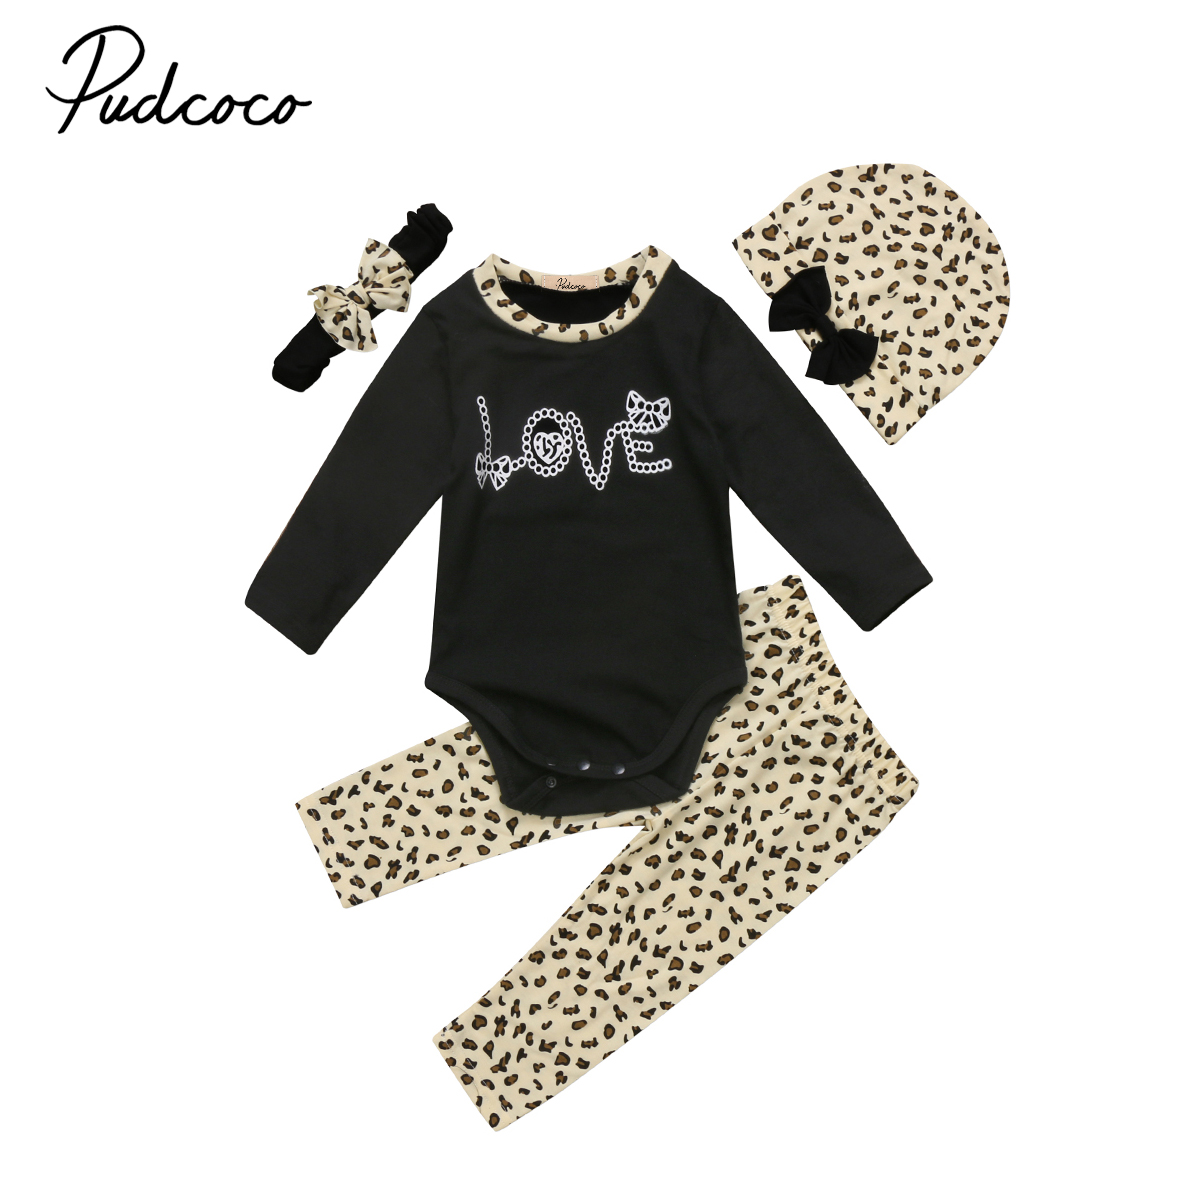 Toddler Clothinf Set Baby Girls Long Sleeve Bodysuit+Leopard Pants+Headband+Hat Clothes 4pcs Outfits Set baby girl 1st birthday outfits short sleeve infant clothing sets lace romper dress headband shoe toddler tutu set baby s clothes